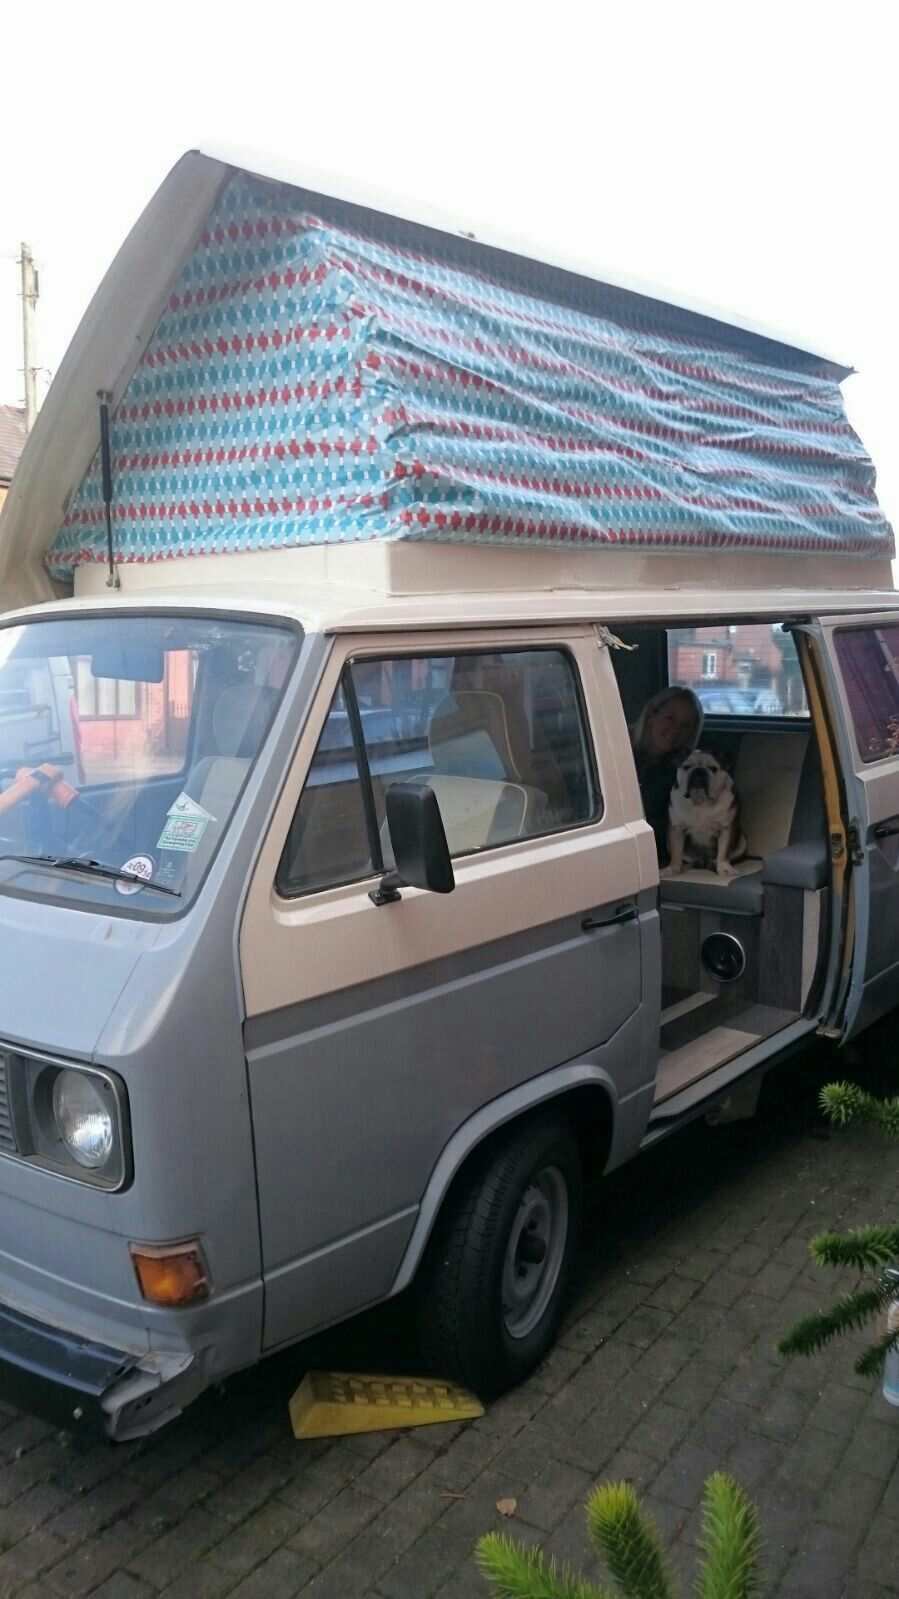 'Dolly' our refurbished vw t25